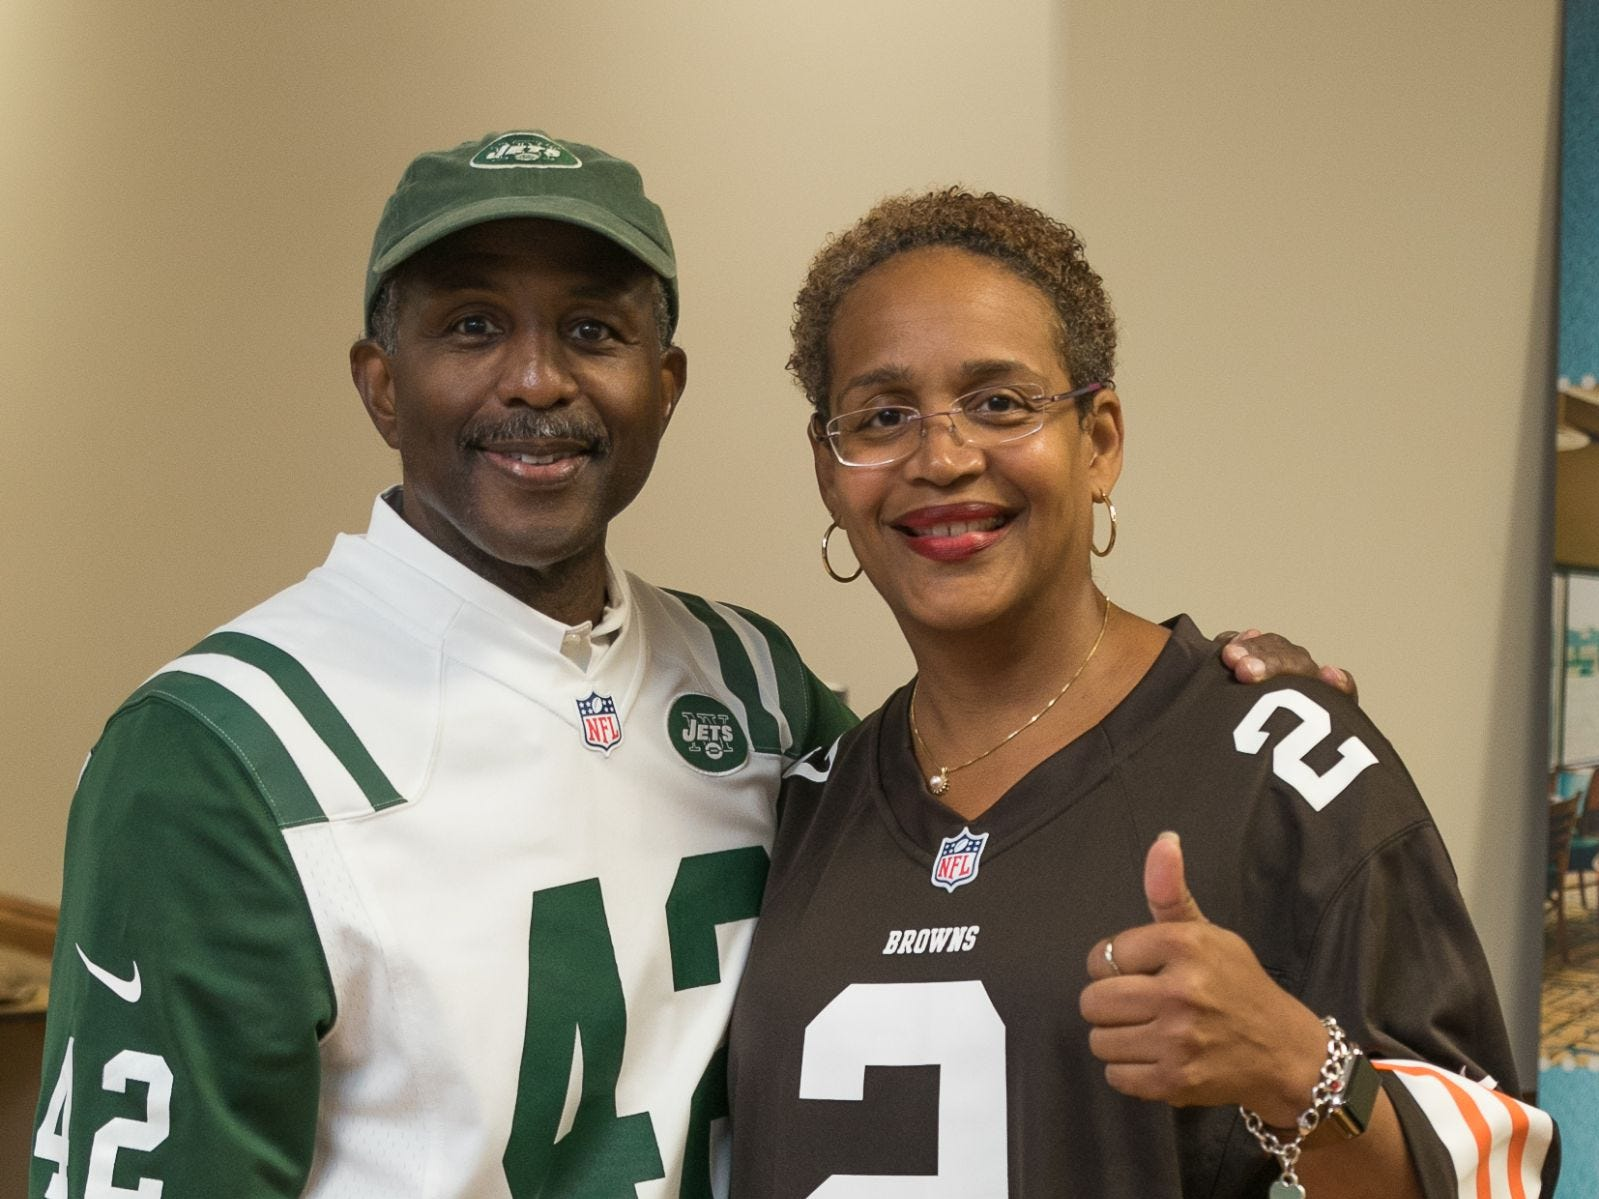 Former NY Jet - Bruce Harper, Kimberly Cummings. Englewood Health hosted its Men's Health and Football event with former Jets and Giants players and Don La Greca from ESPN radio. Attendees watched the Thursday night football game while receiving advice about staying healthy and tackling health problems early on. 09/20/2018